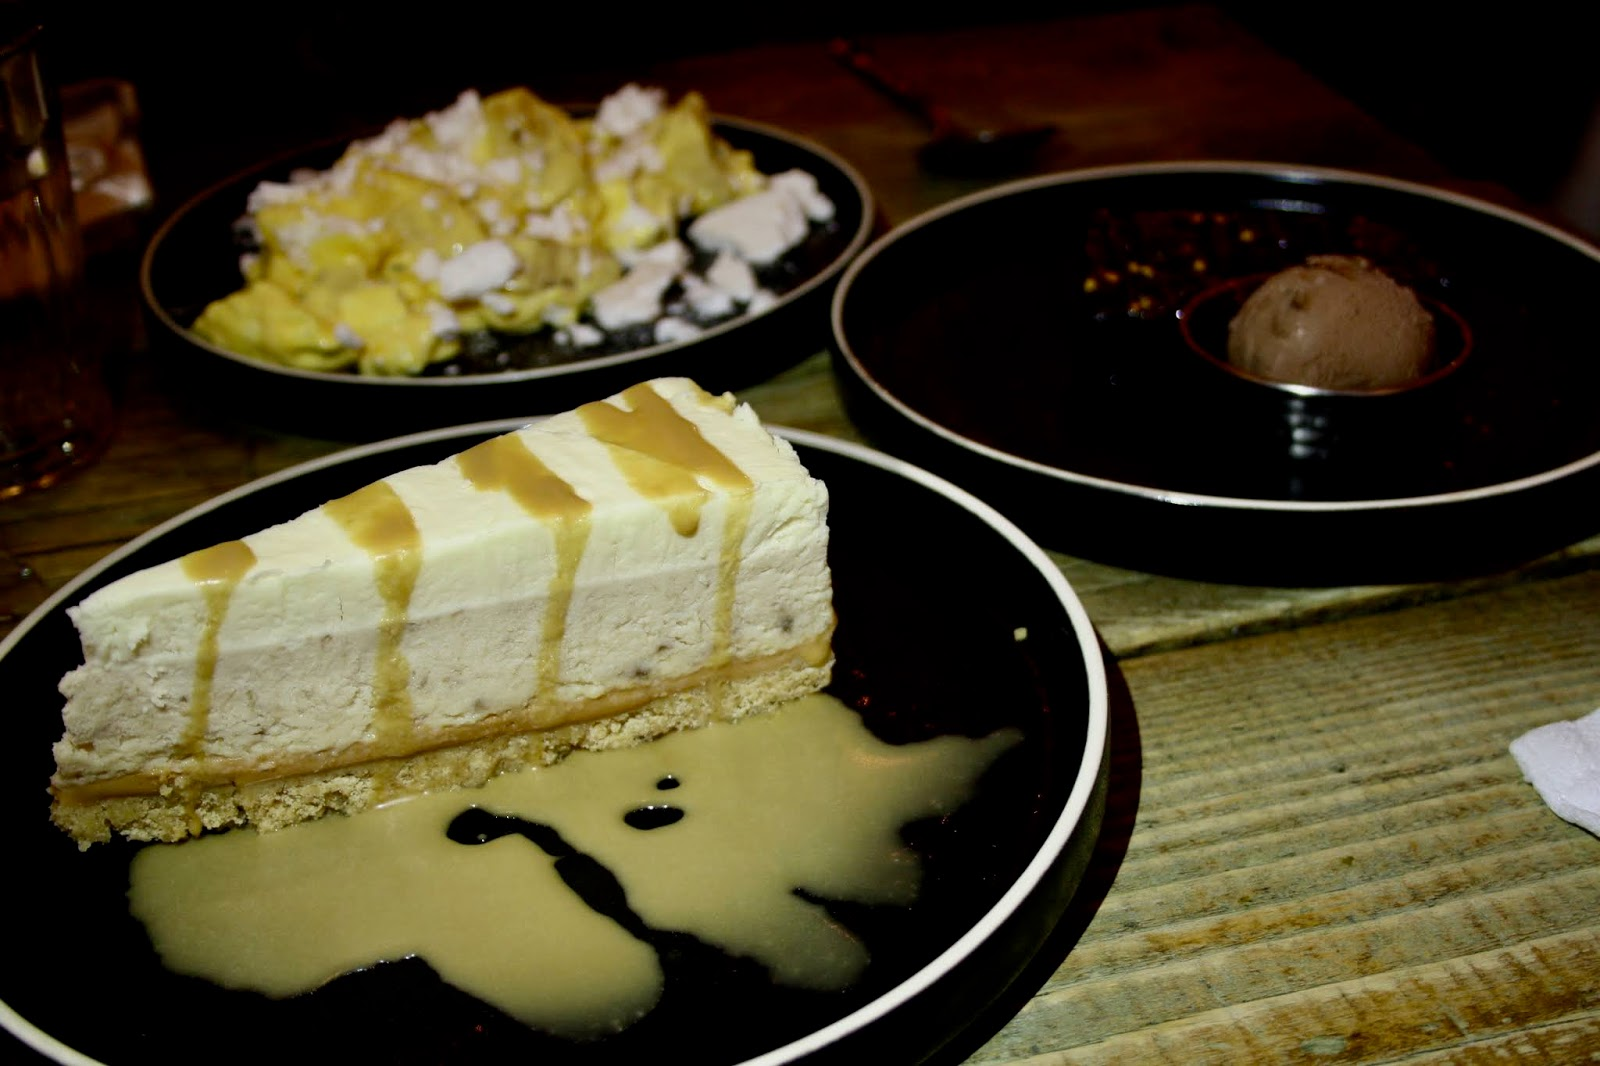 Turtle Bay desserts pudding review caribbean mess toffee cheesecake